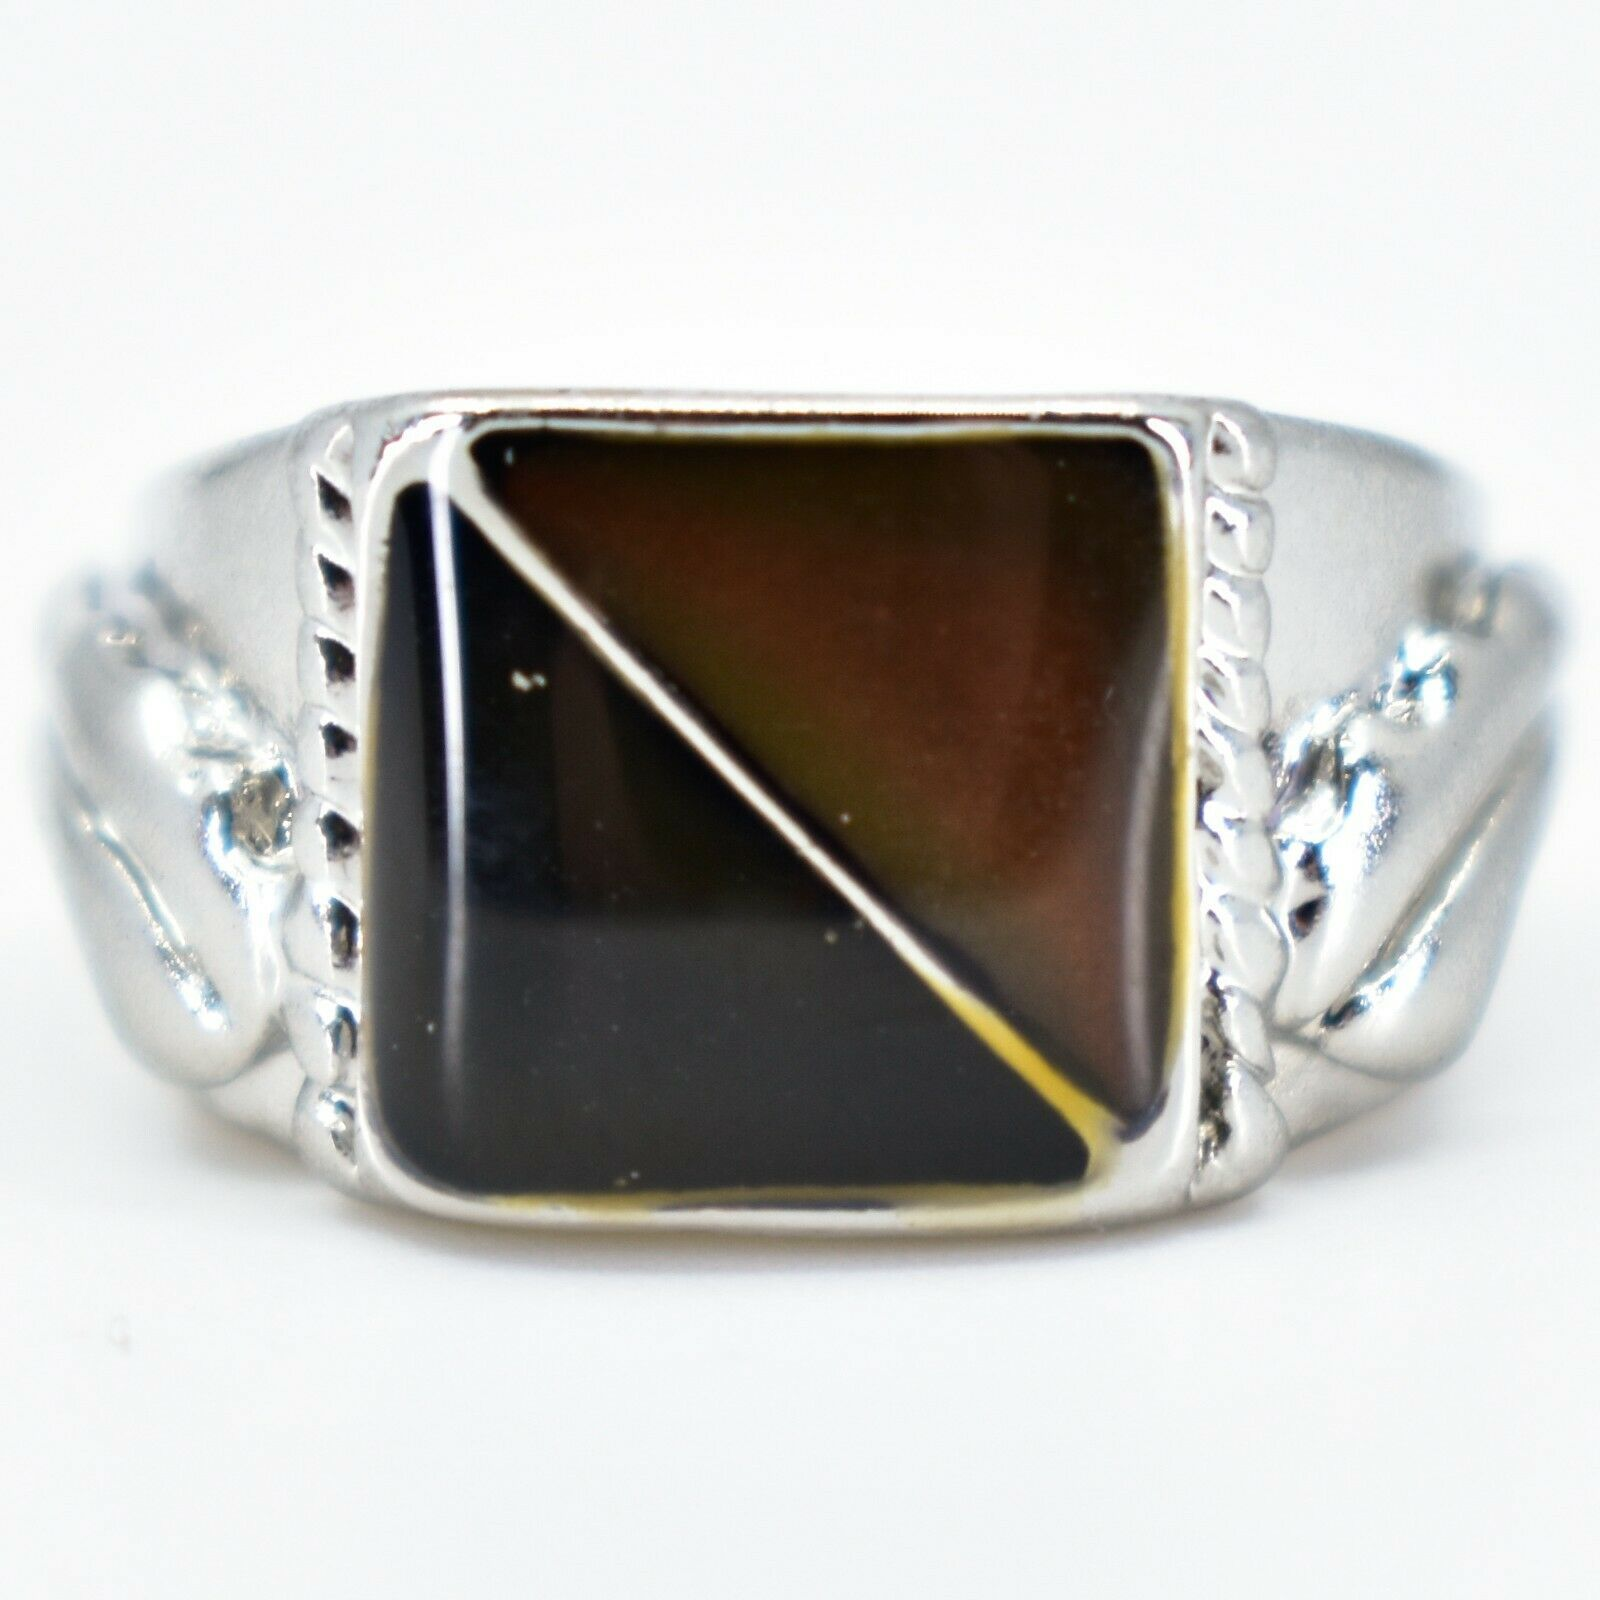 Geometric Square Triangle Color Changing Contrasting Silver Painted Mood Ring